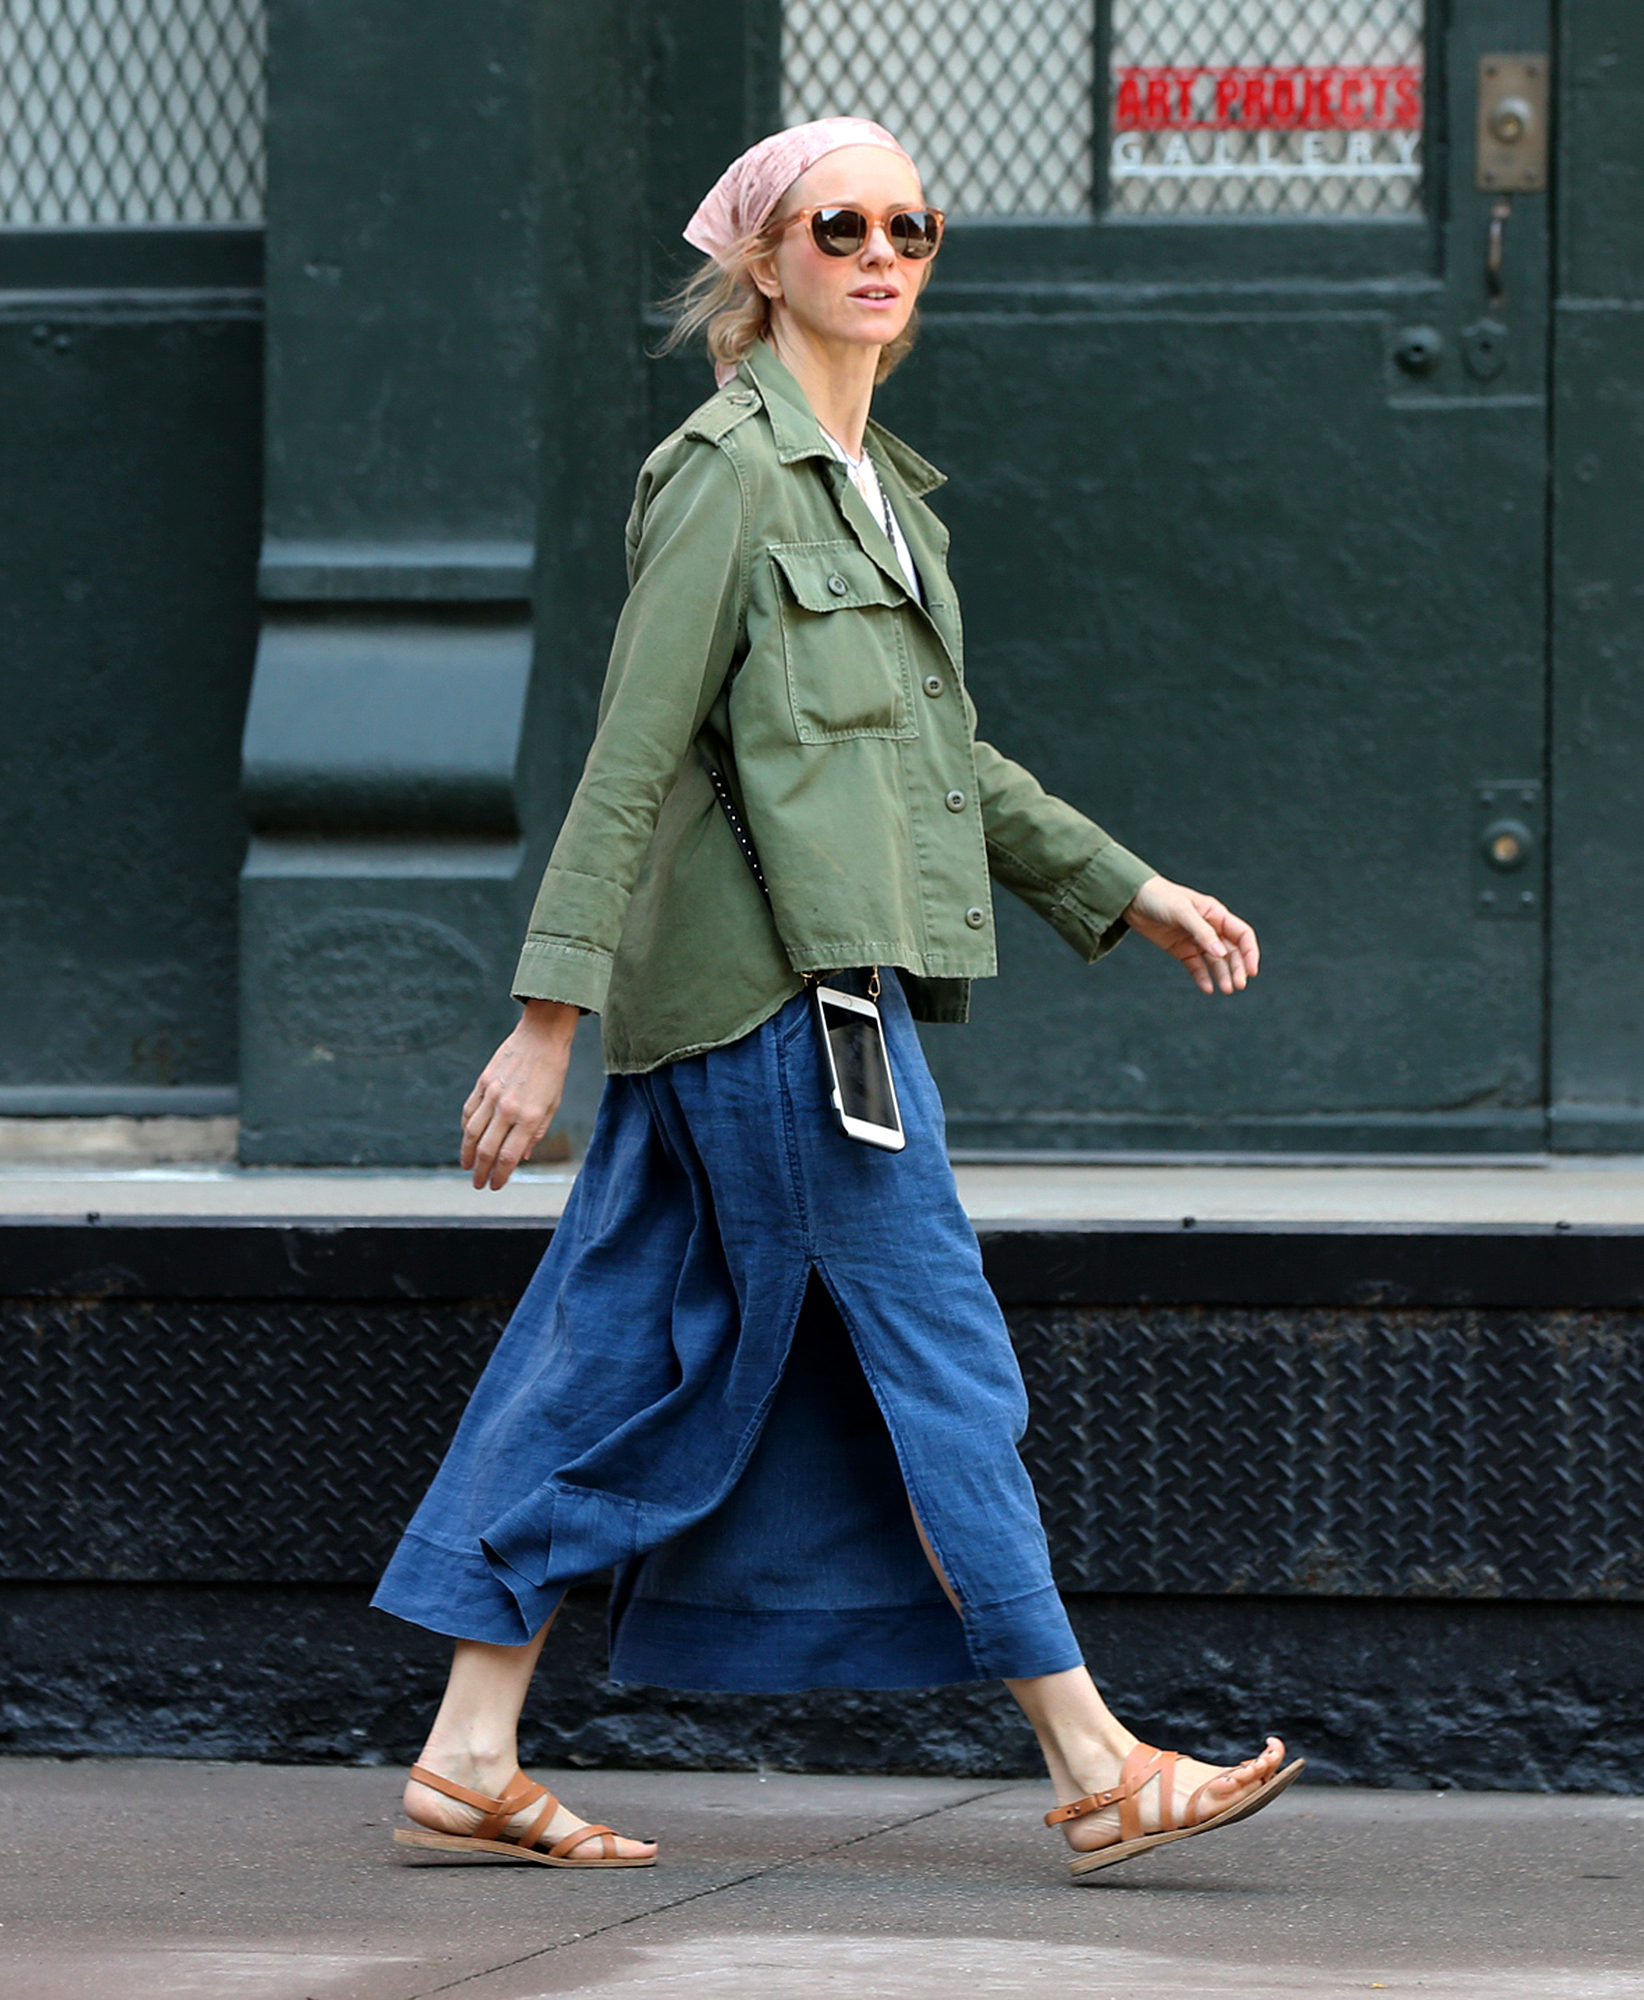 EXCLUSIVE: Actress Naomi Watts, wearing a gypsy-inspired style, walks home in New York City